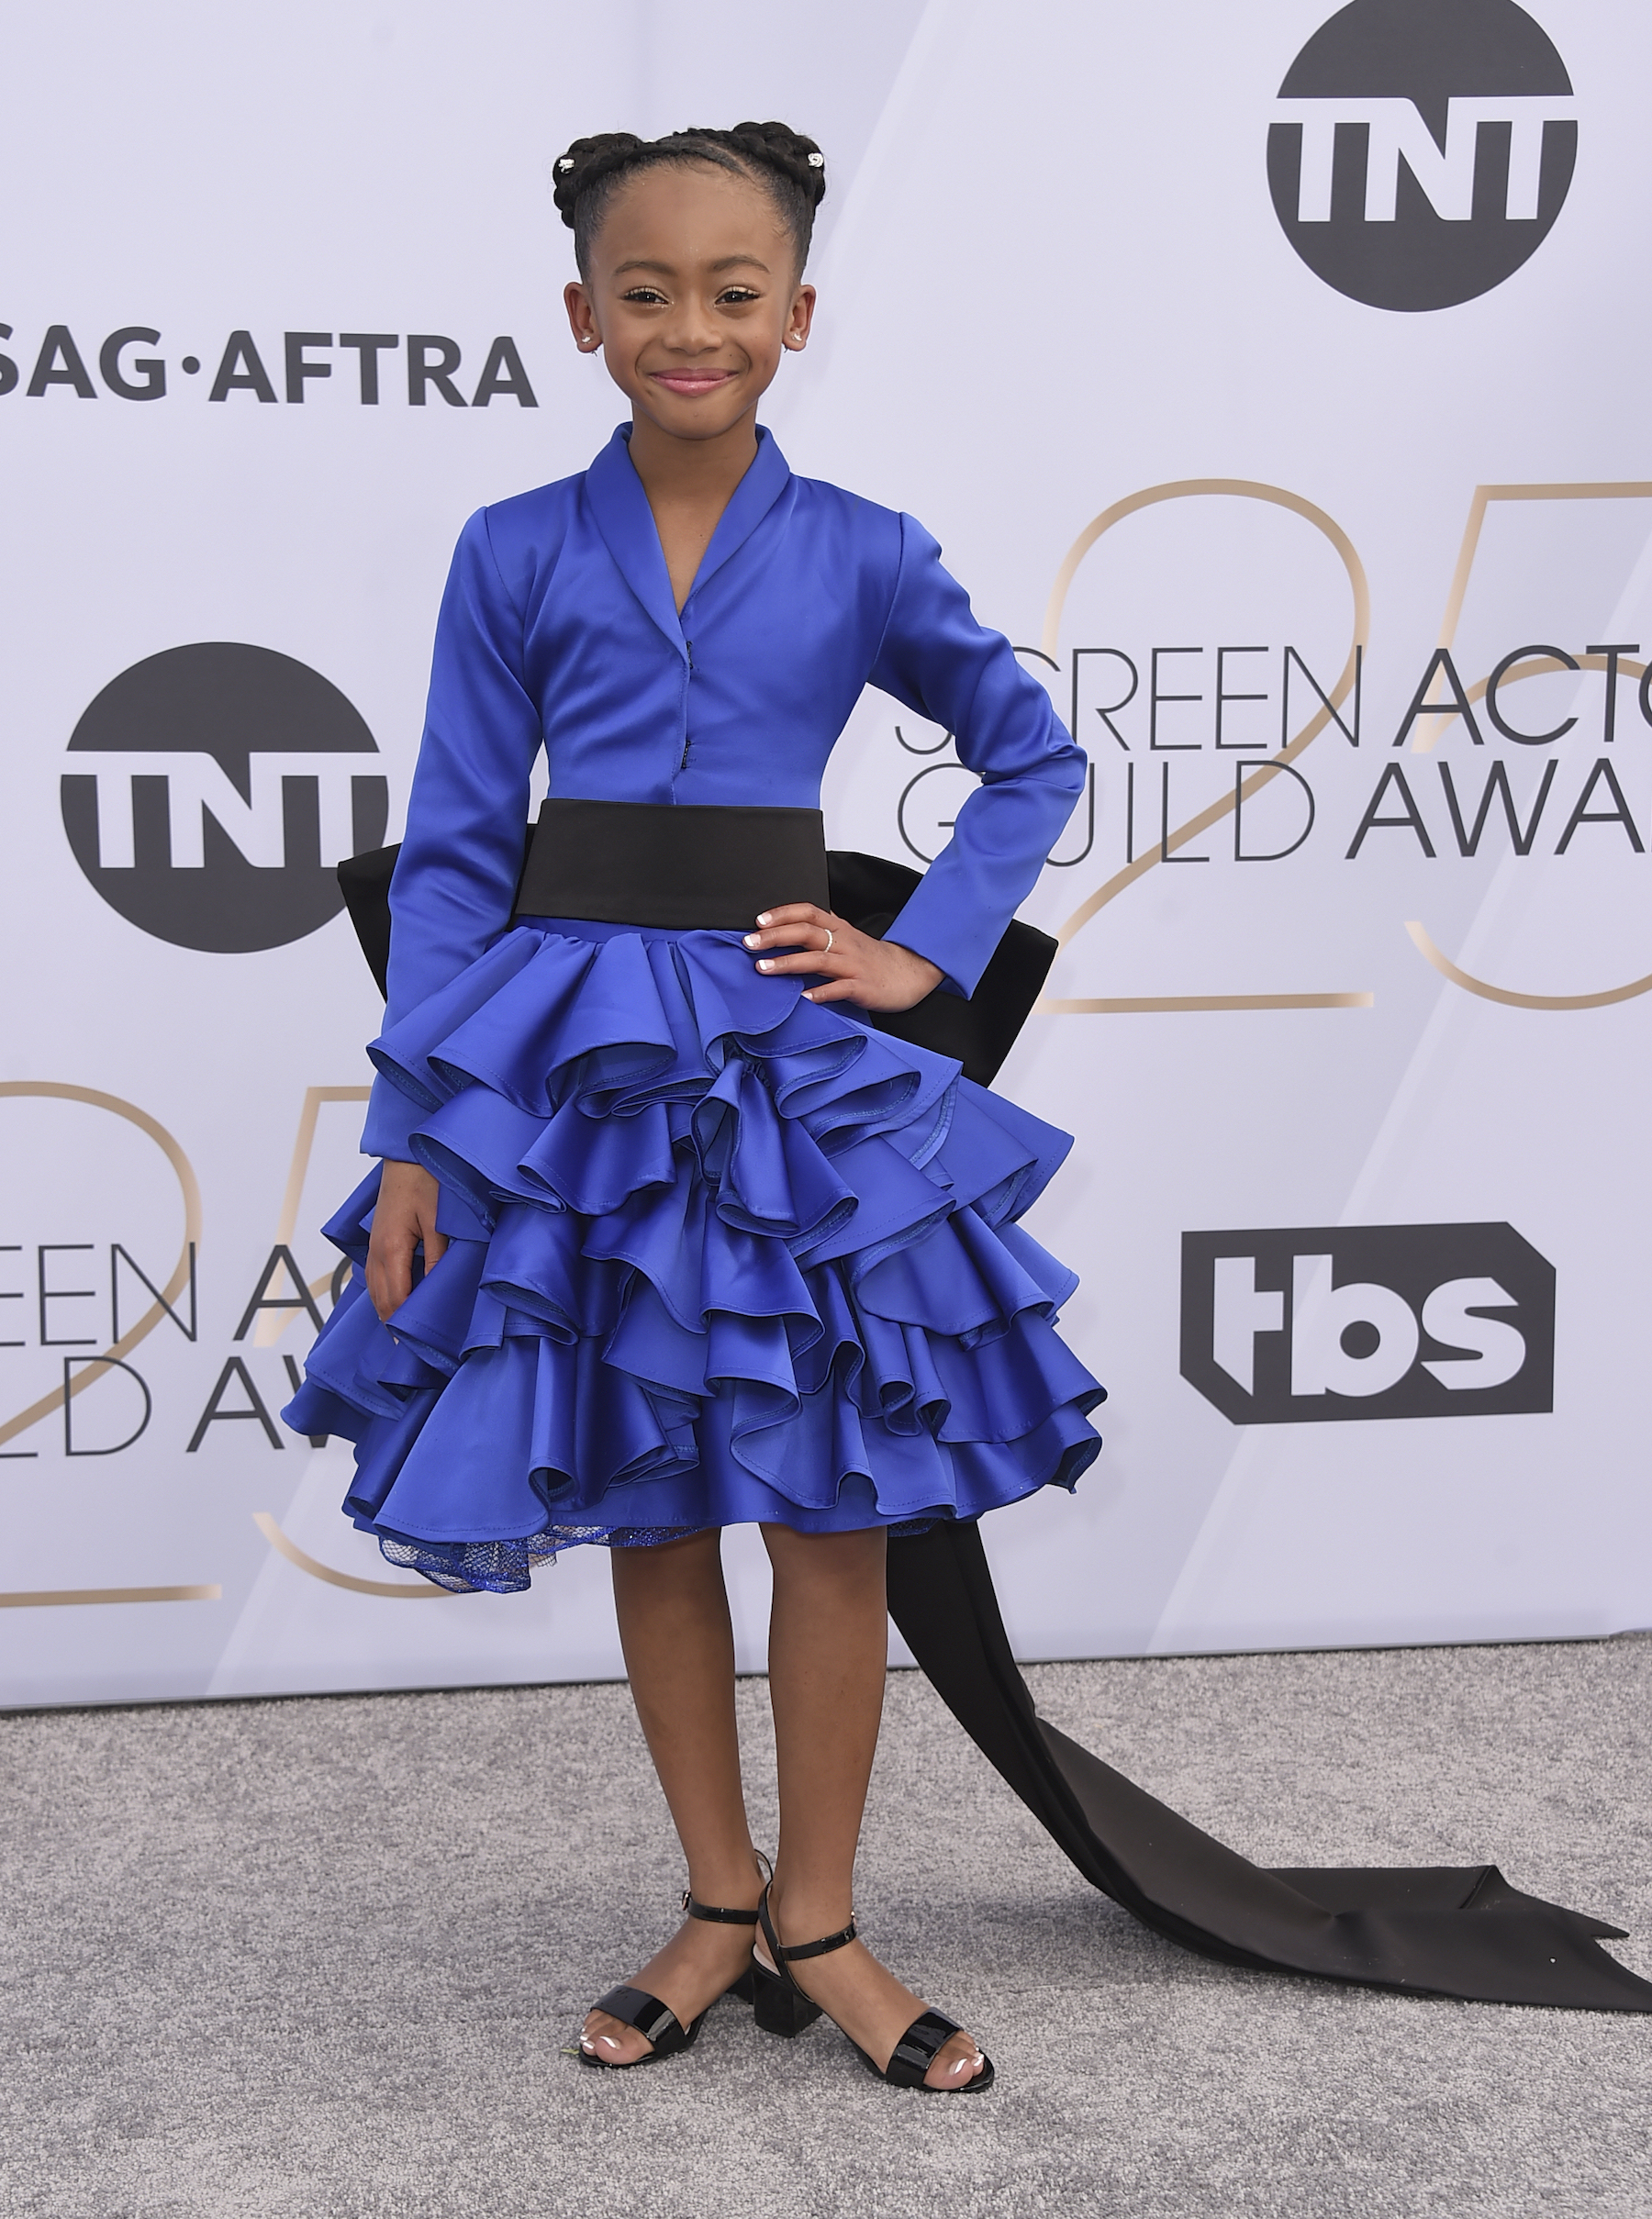 <div class='meta'><div class='origin-logo' data-origin='AP'></div><span class='caption-text' data-credit='Jordan Strauss/Invision/AP'>Faithe C. Herman arrives at the 25th annual Screen Actors Guild Awards at the Shrine Auditorium & Expo Hall on Sunday, Jan. 27, 2019, in Los Angeles.</span></div>